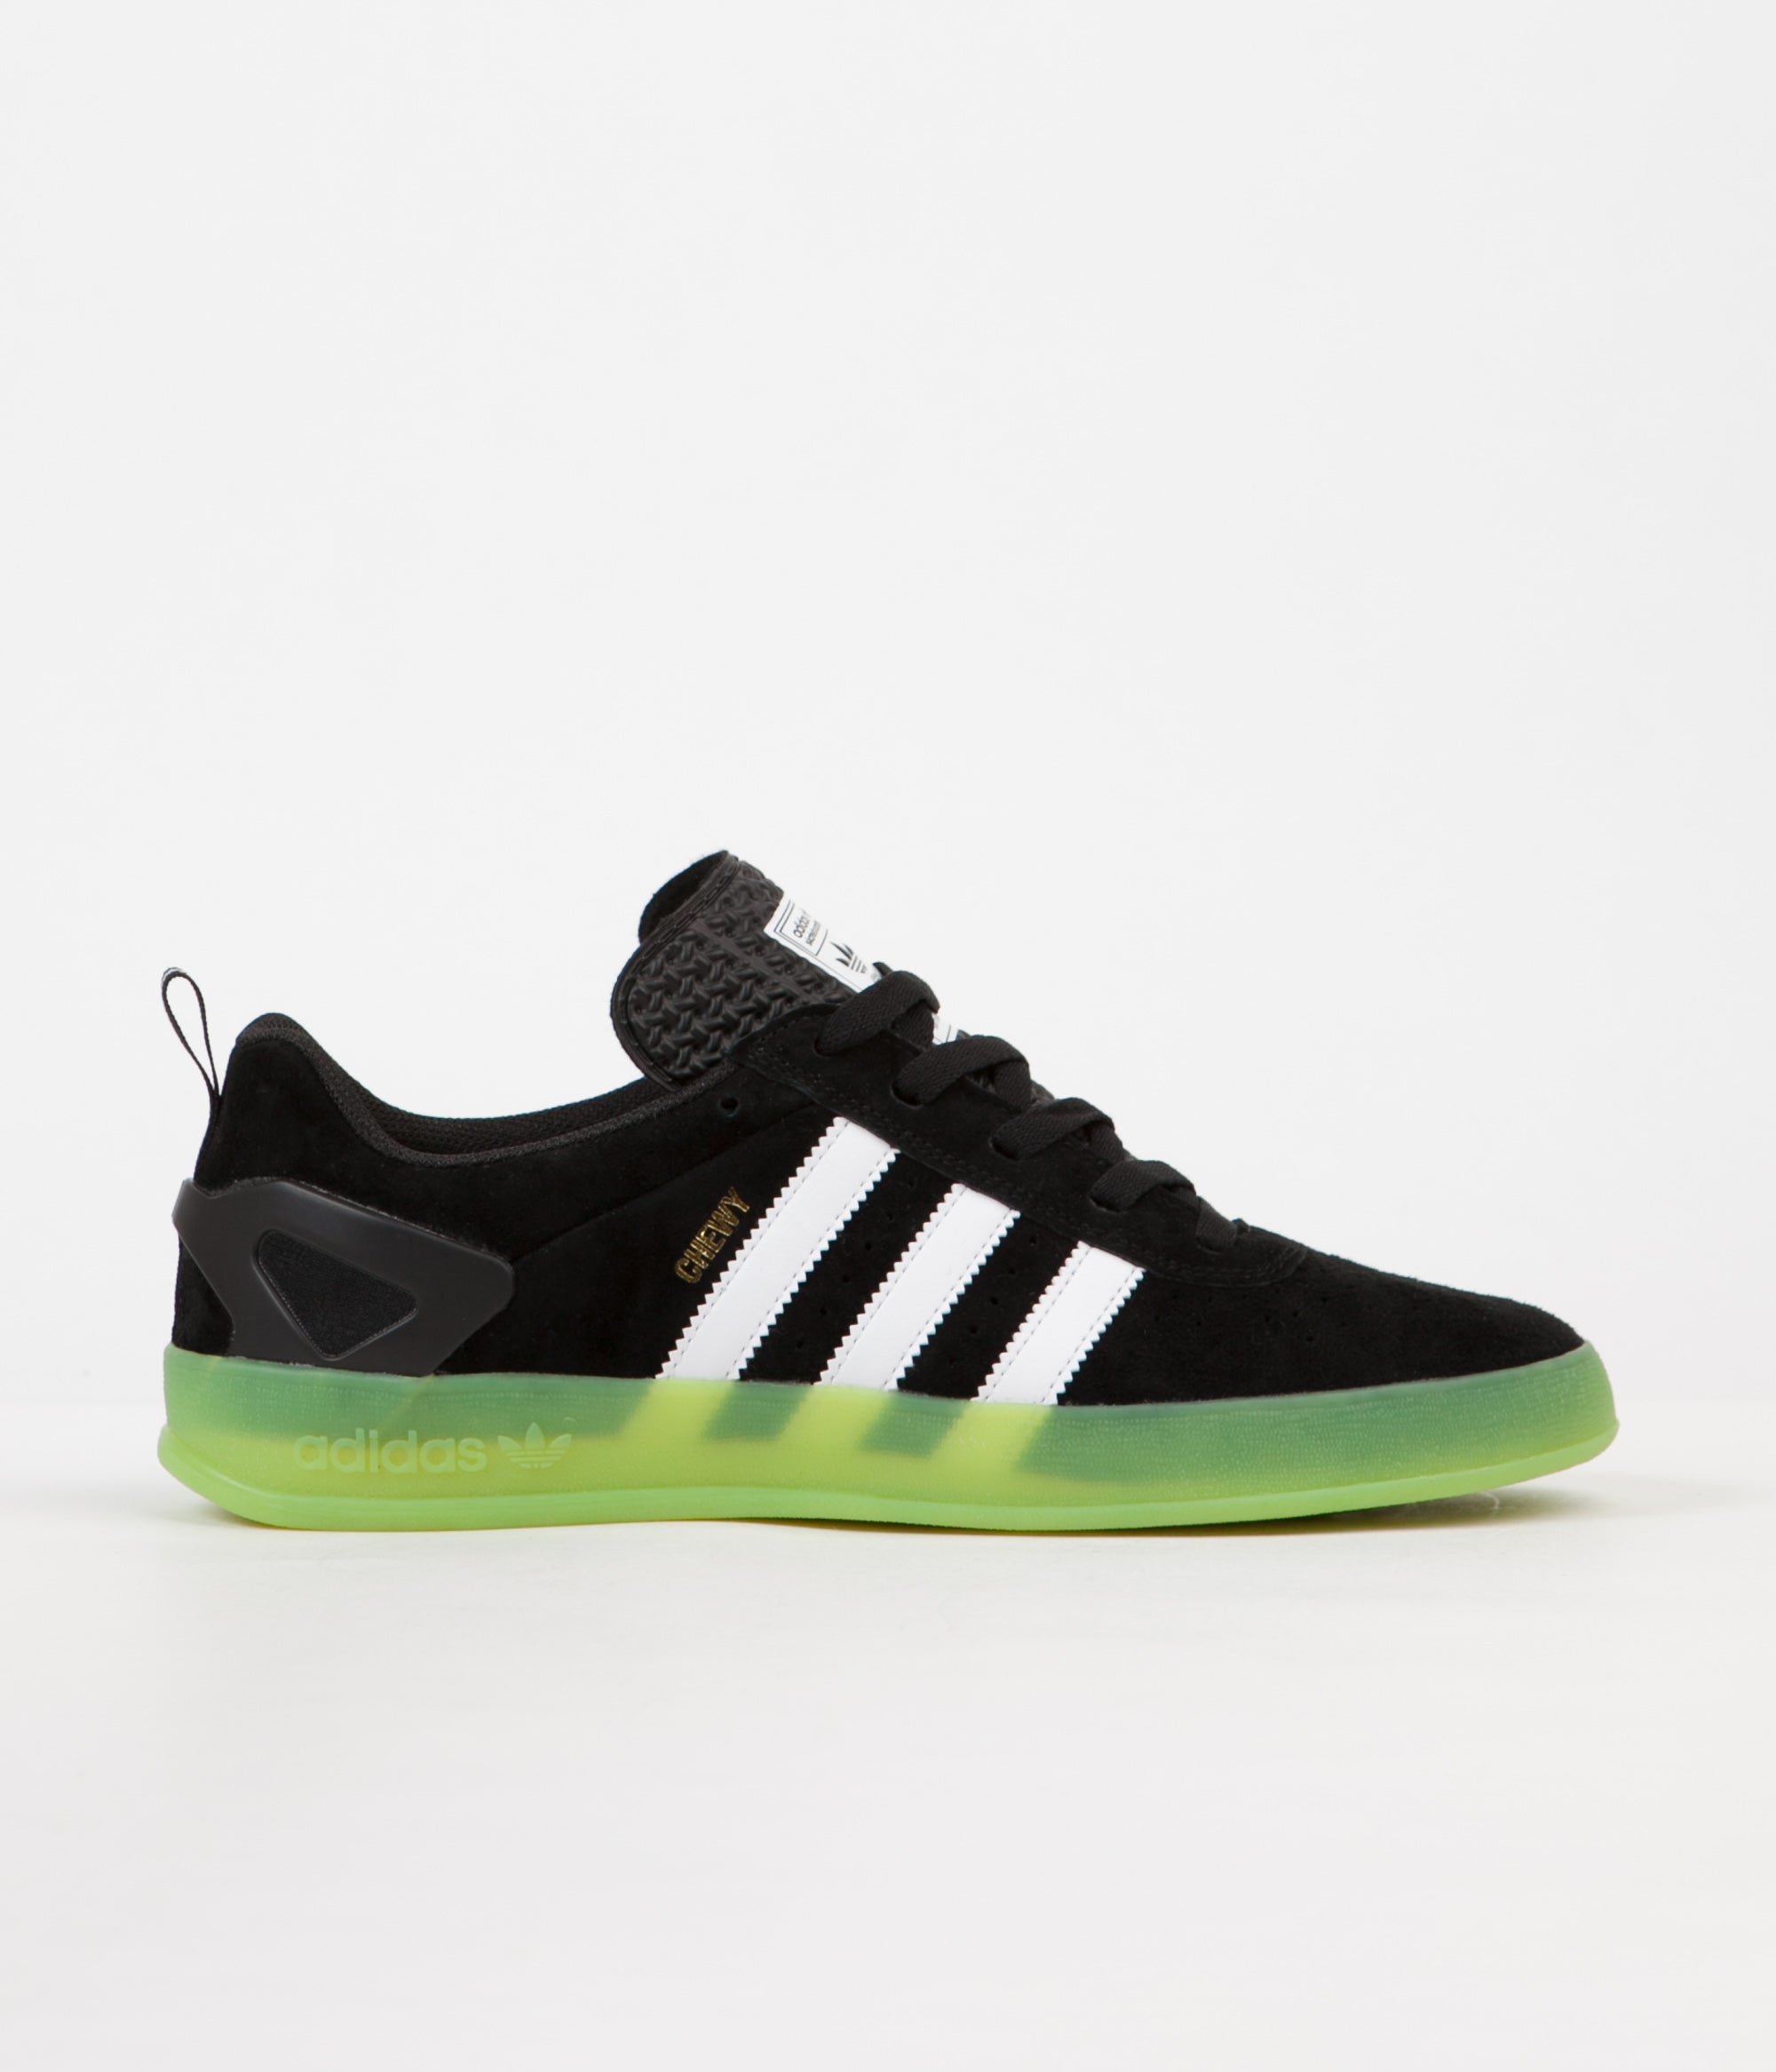 size 40 266fd 30720 Adidas x Palace Pro Chewy Shoes - Black  White  Green